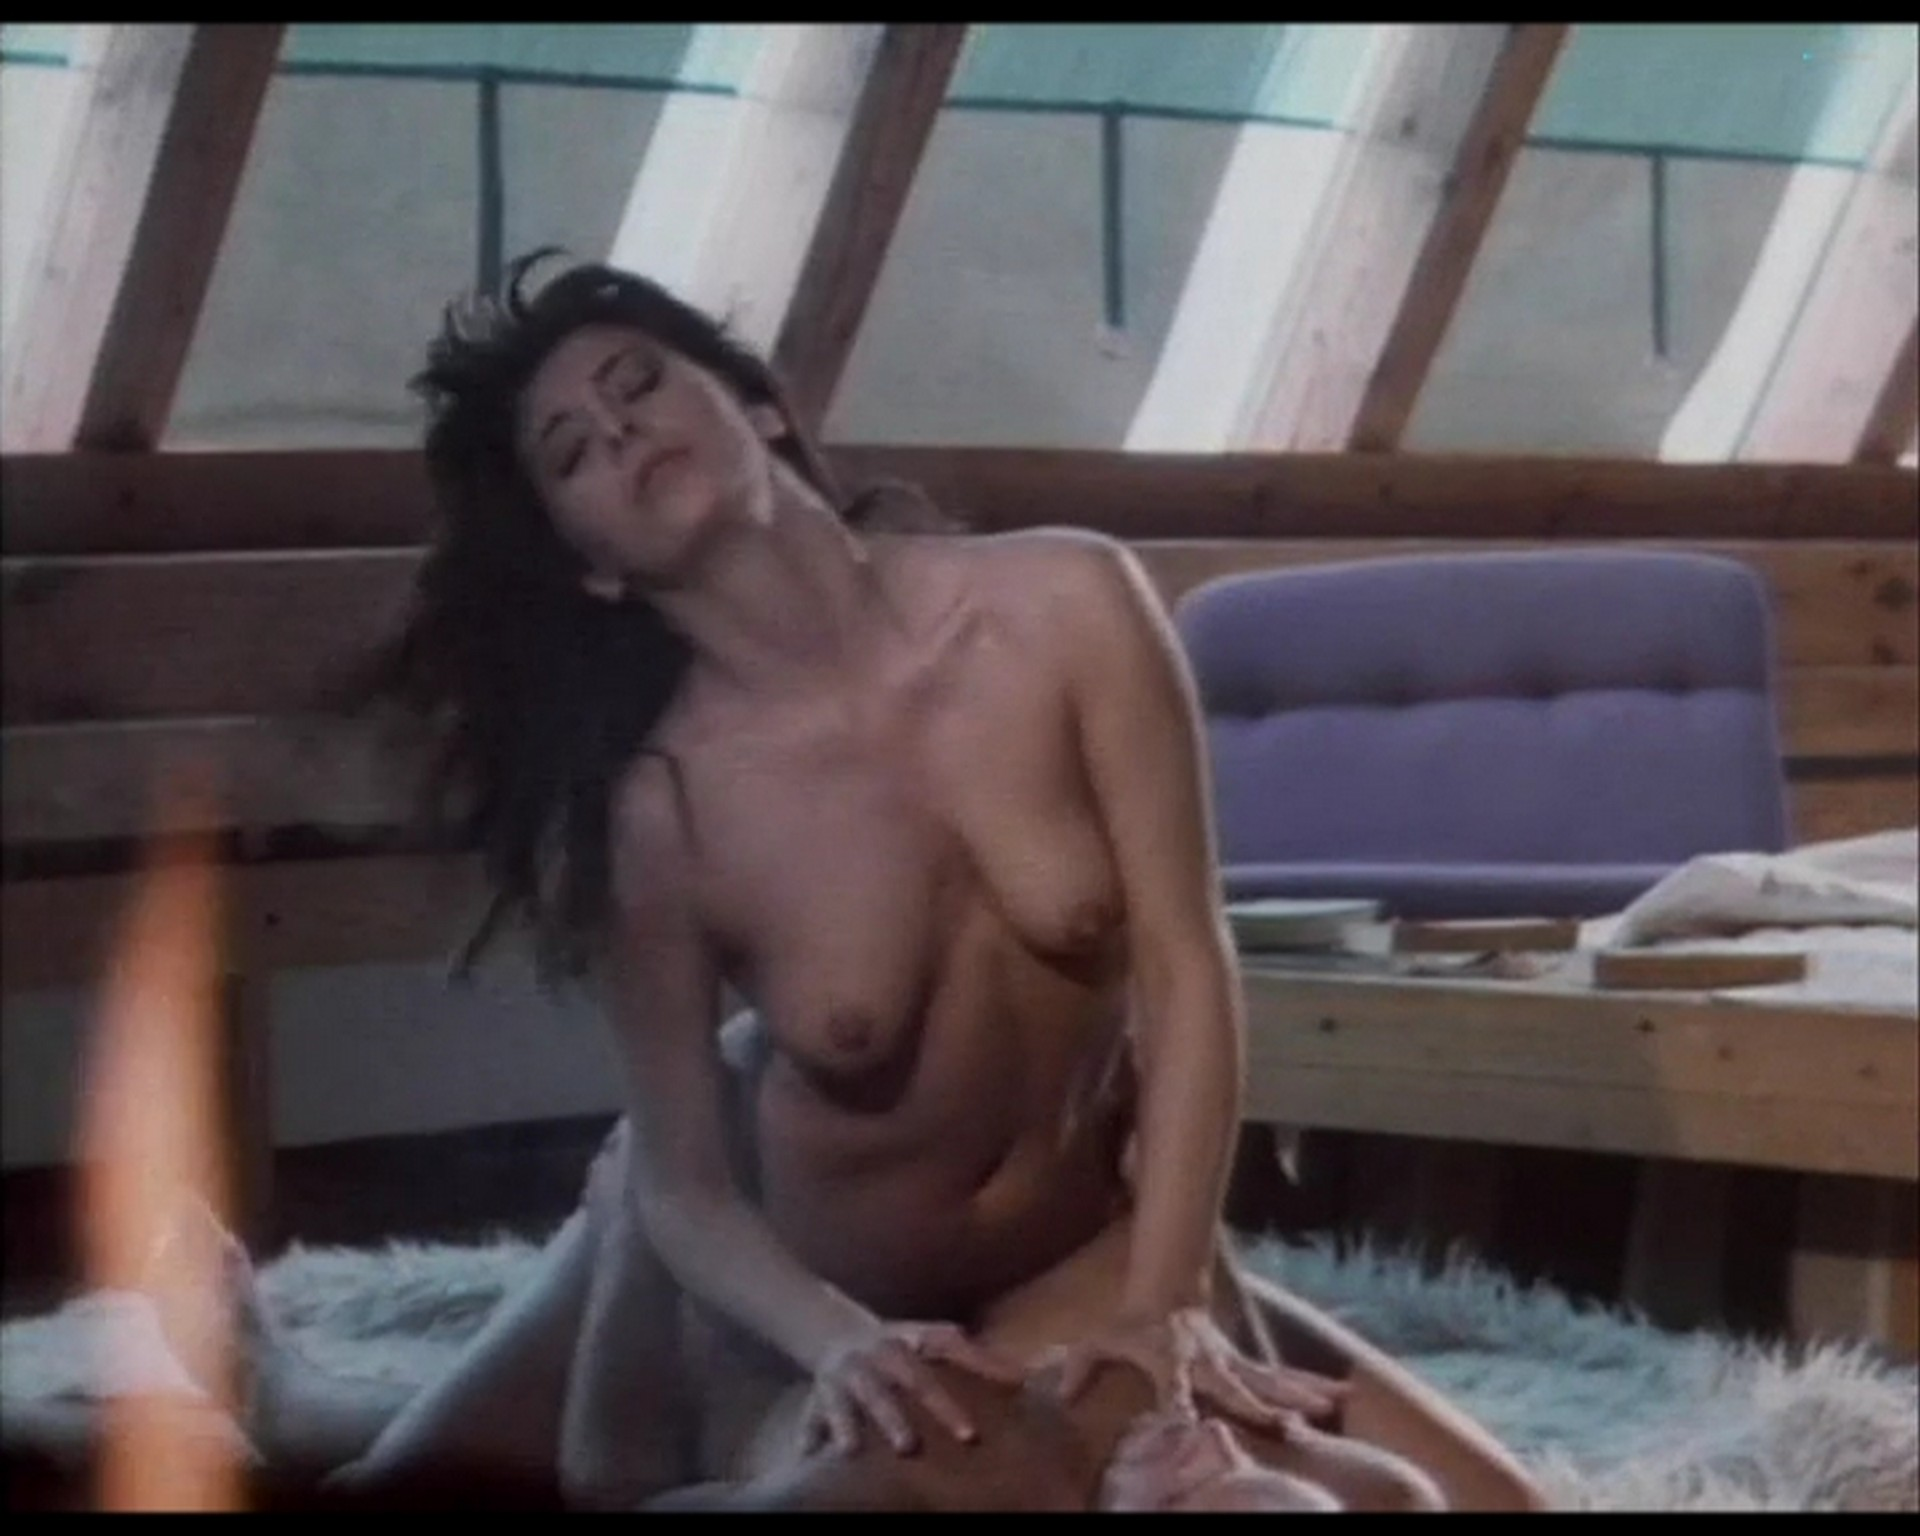 Malu nude full frontal Angeles Lopez Barea nude sex Scent of Passion 1991 013